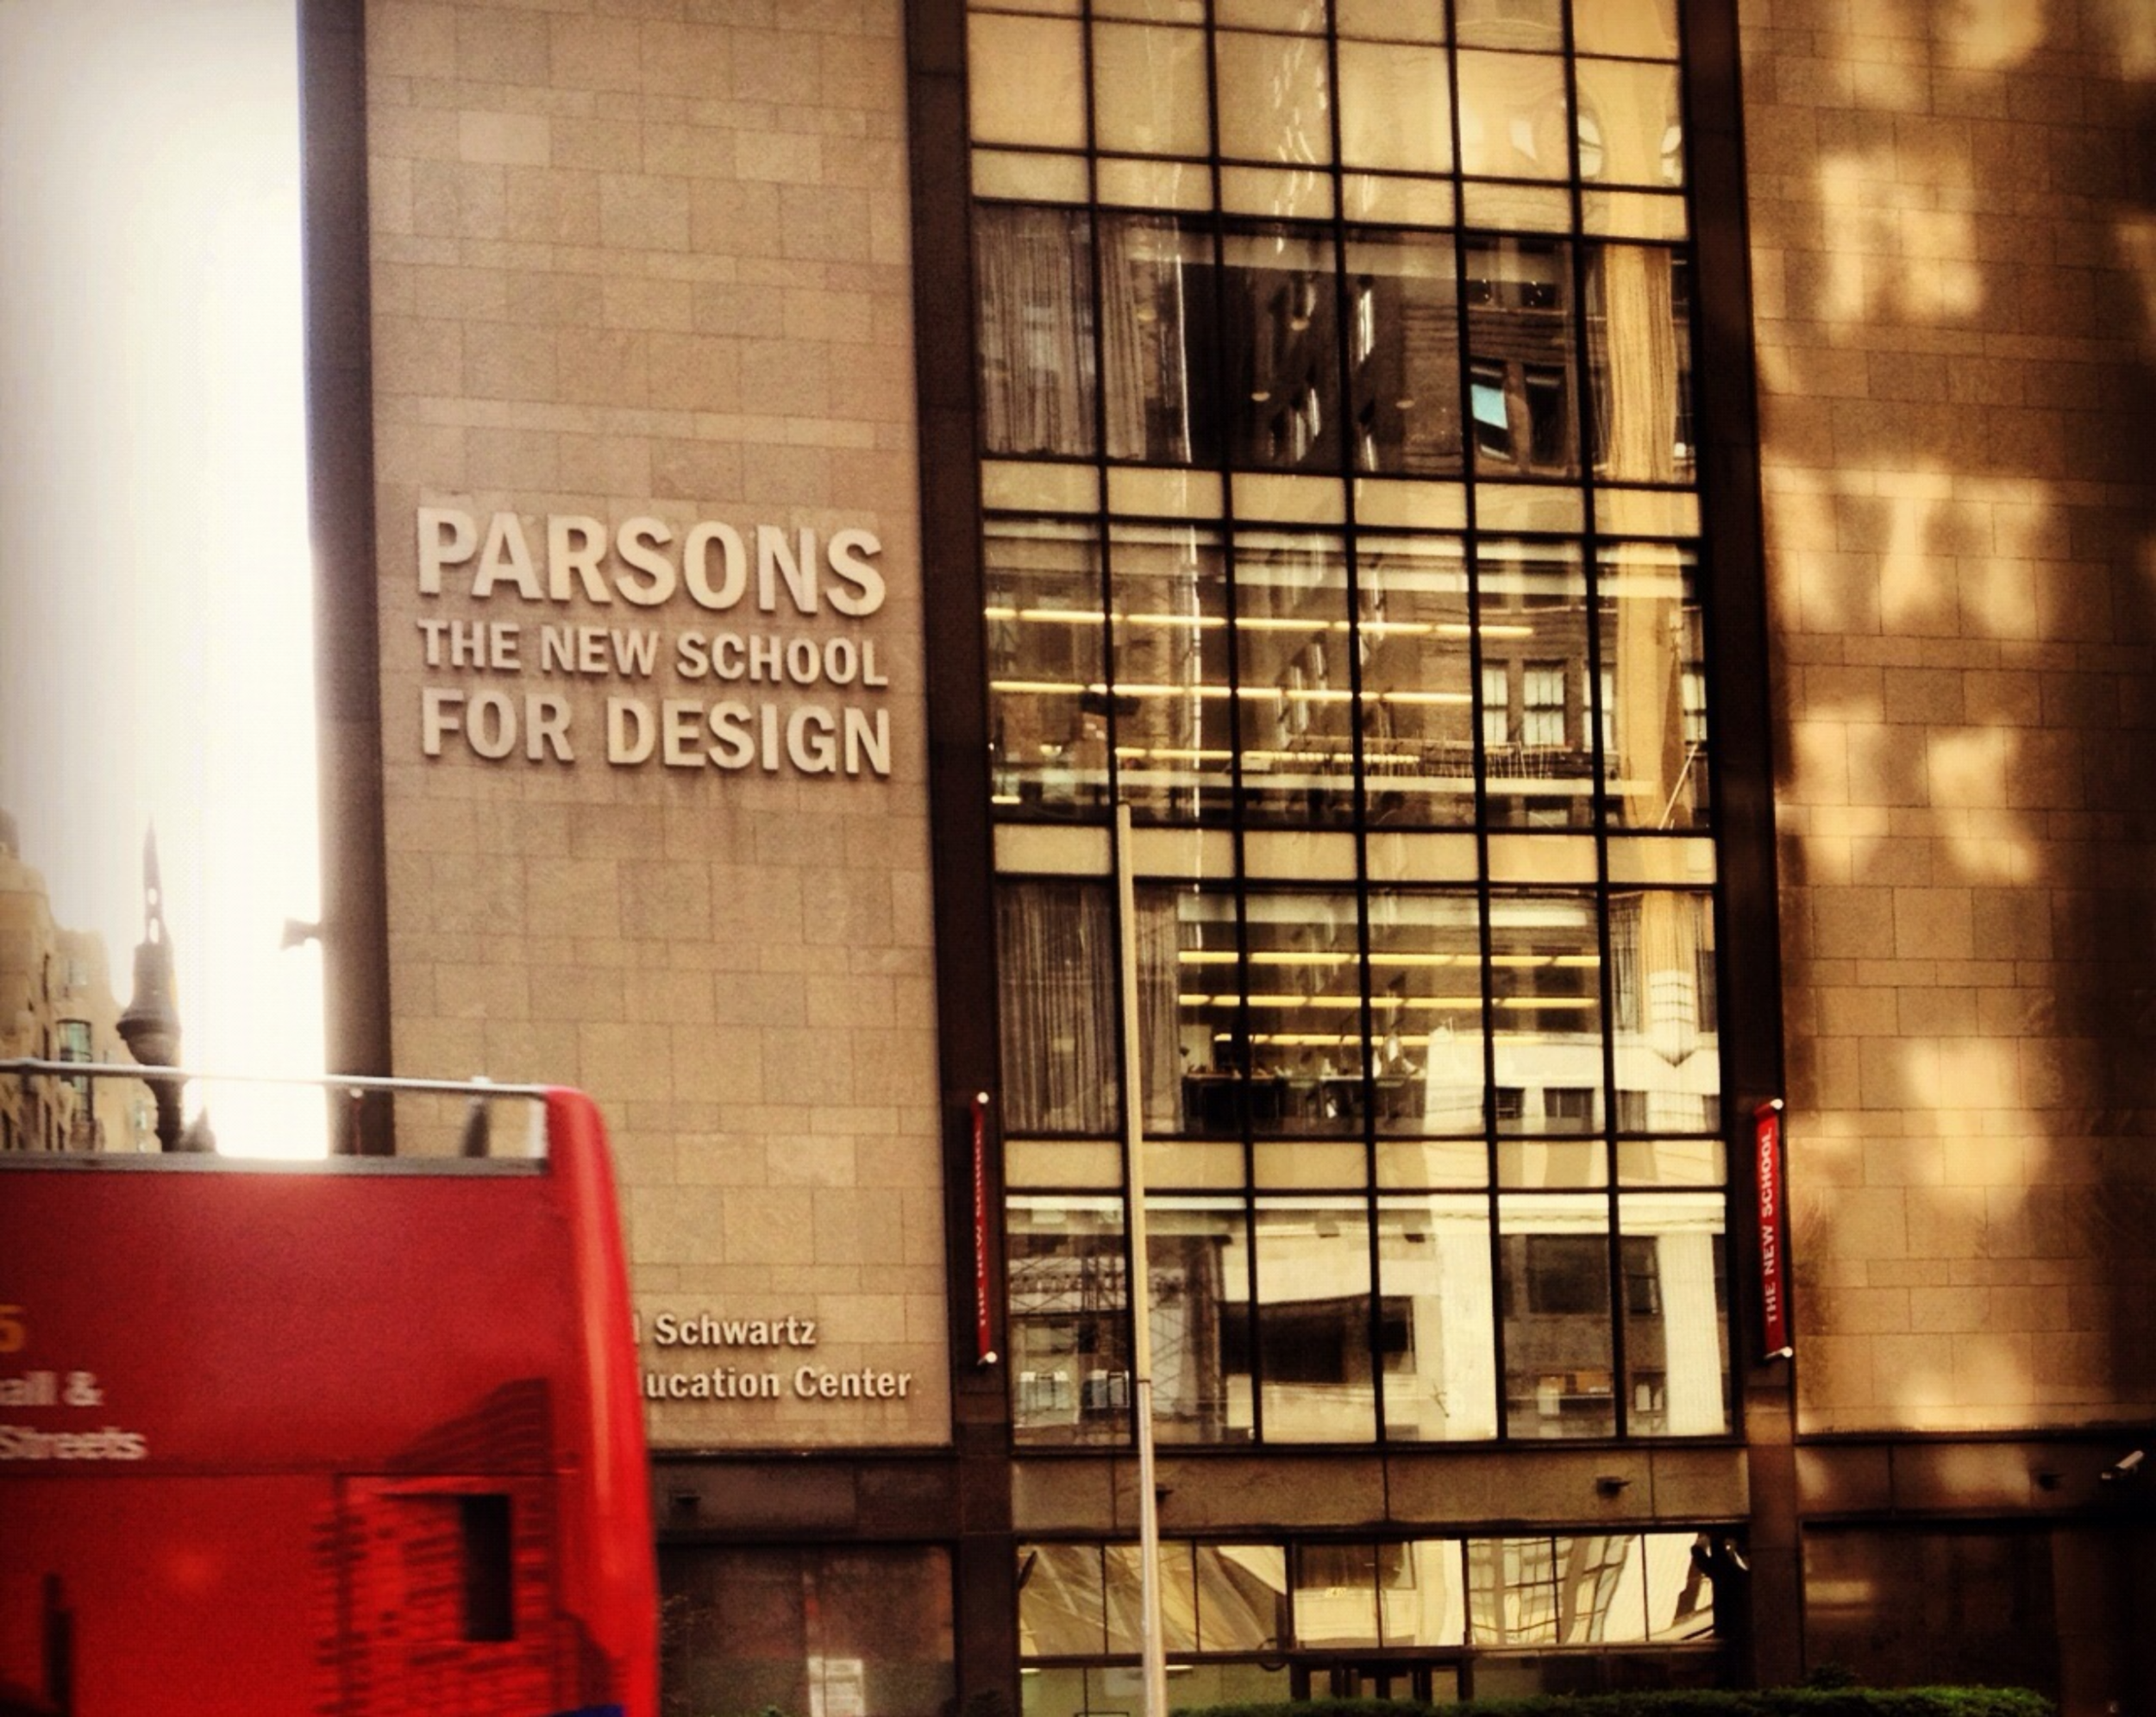 Parsons The New School For Design- Average Tuition Cost $21,000 per semester.